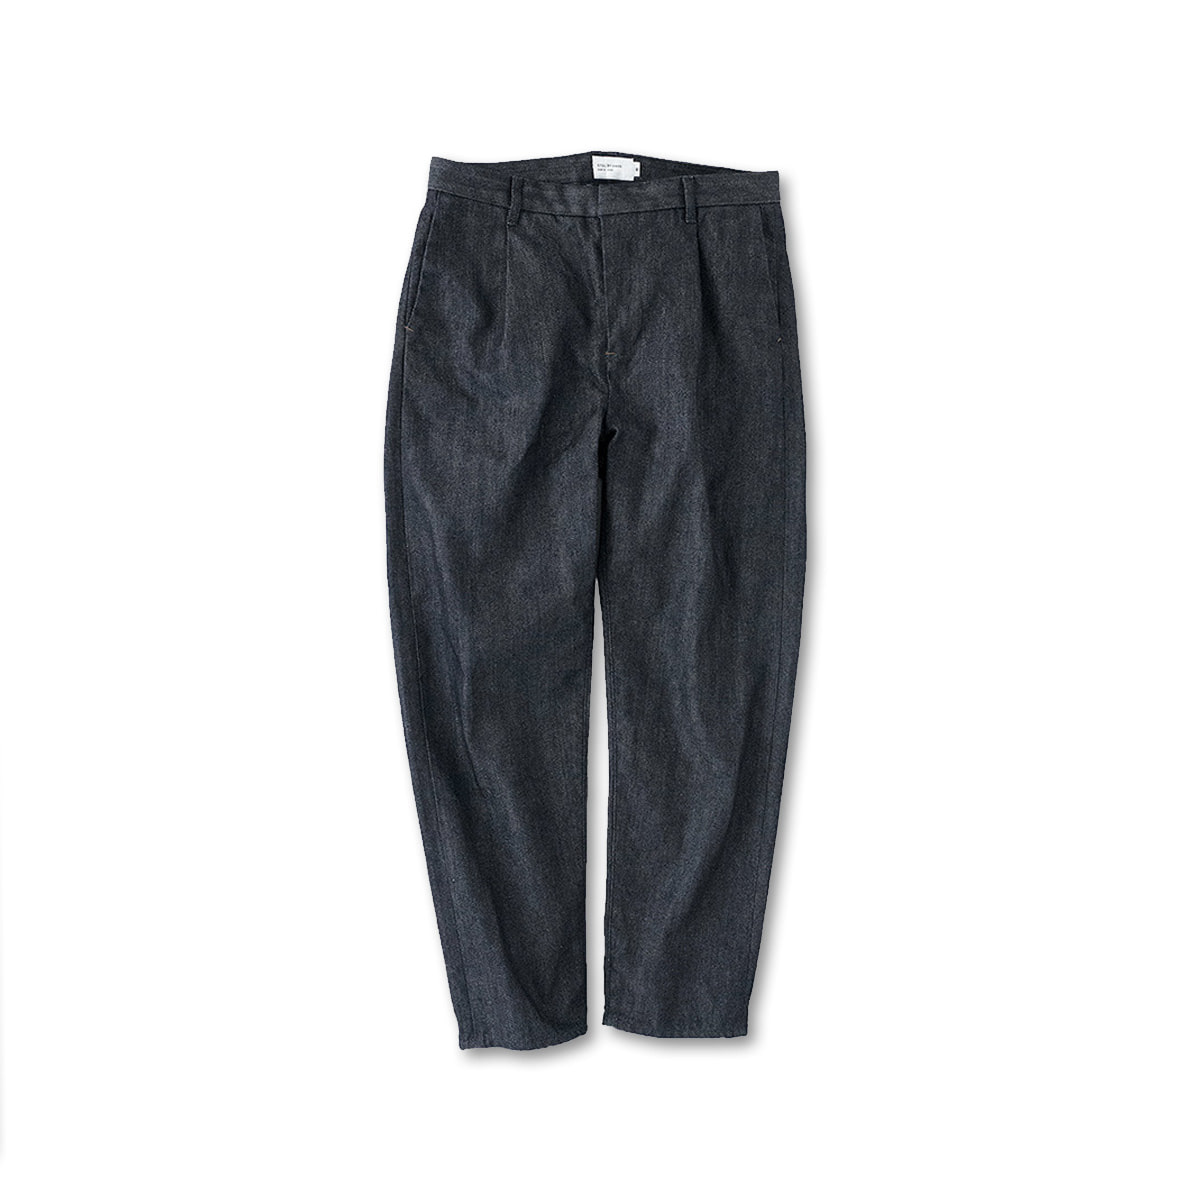 [STILL BY HAND] DN0393OS - DENIM TAPERED PANTS 'NAVY'